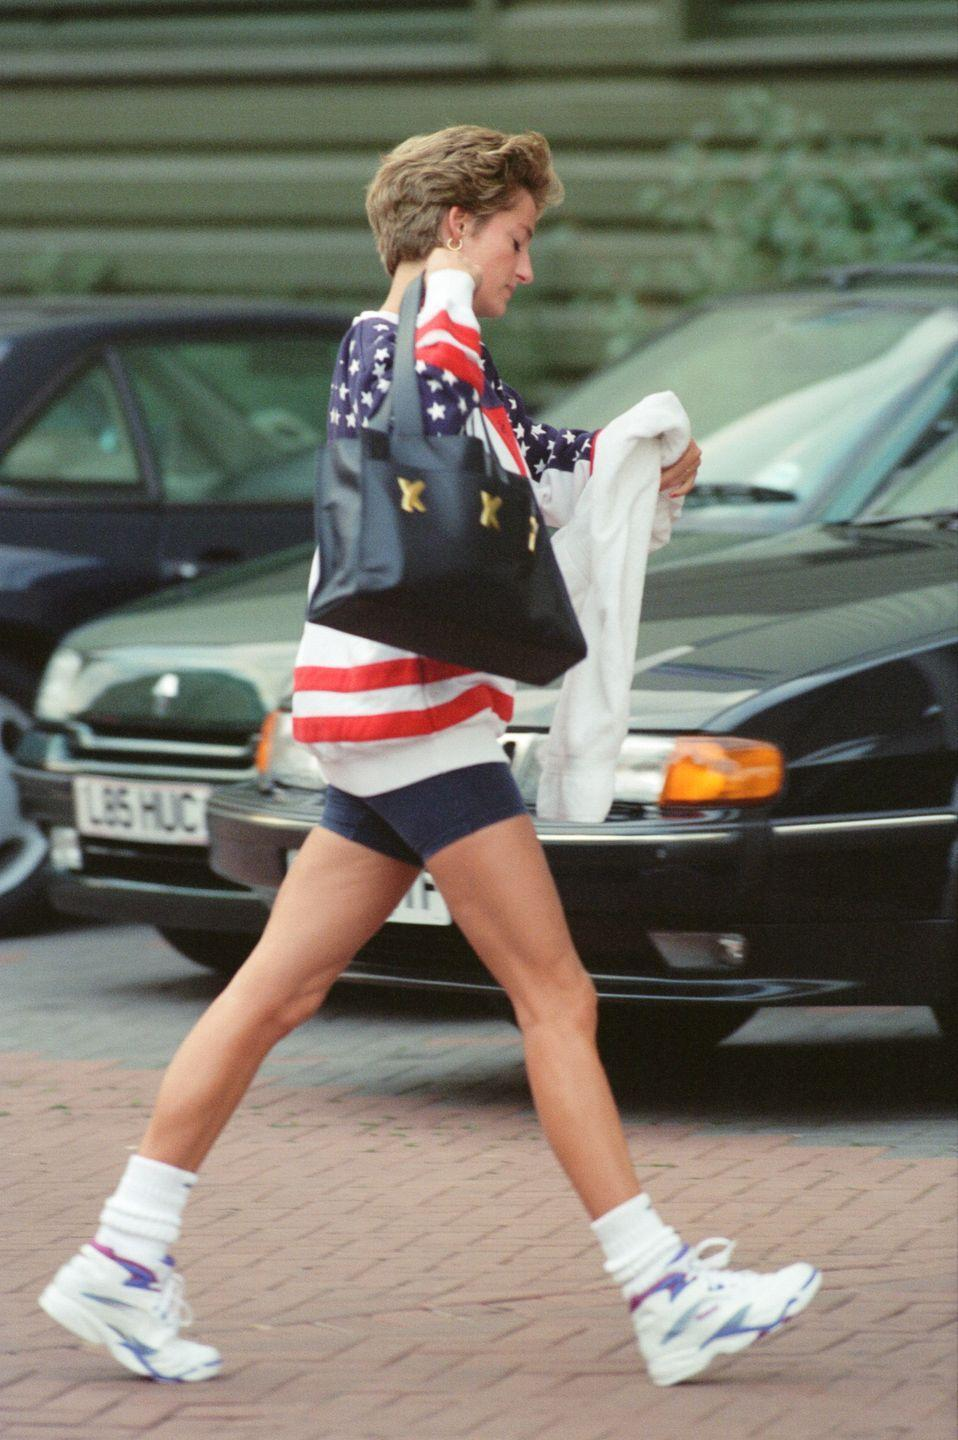 <p>Though Diana was, of course, British, she seemed to enjoy the novelty of Americana-themed outfits, wearing American flag-adorned garments on multiple occasions. </p>